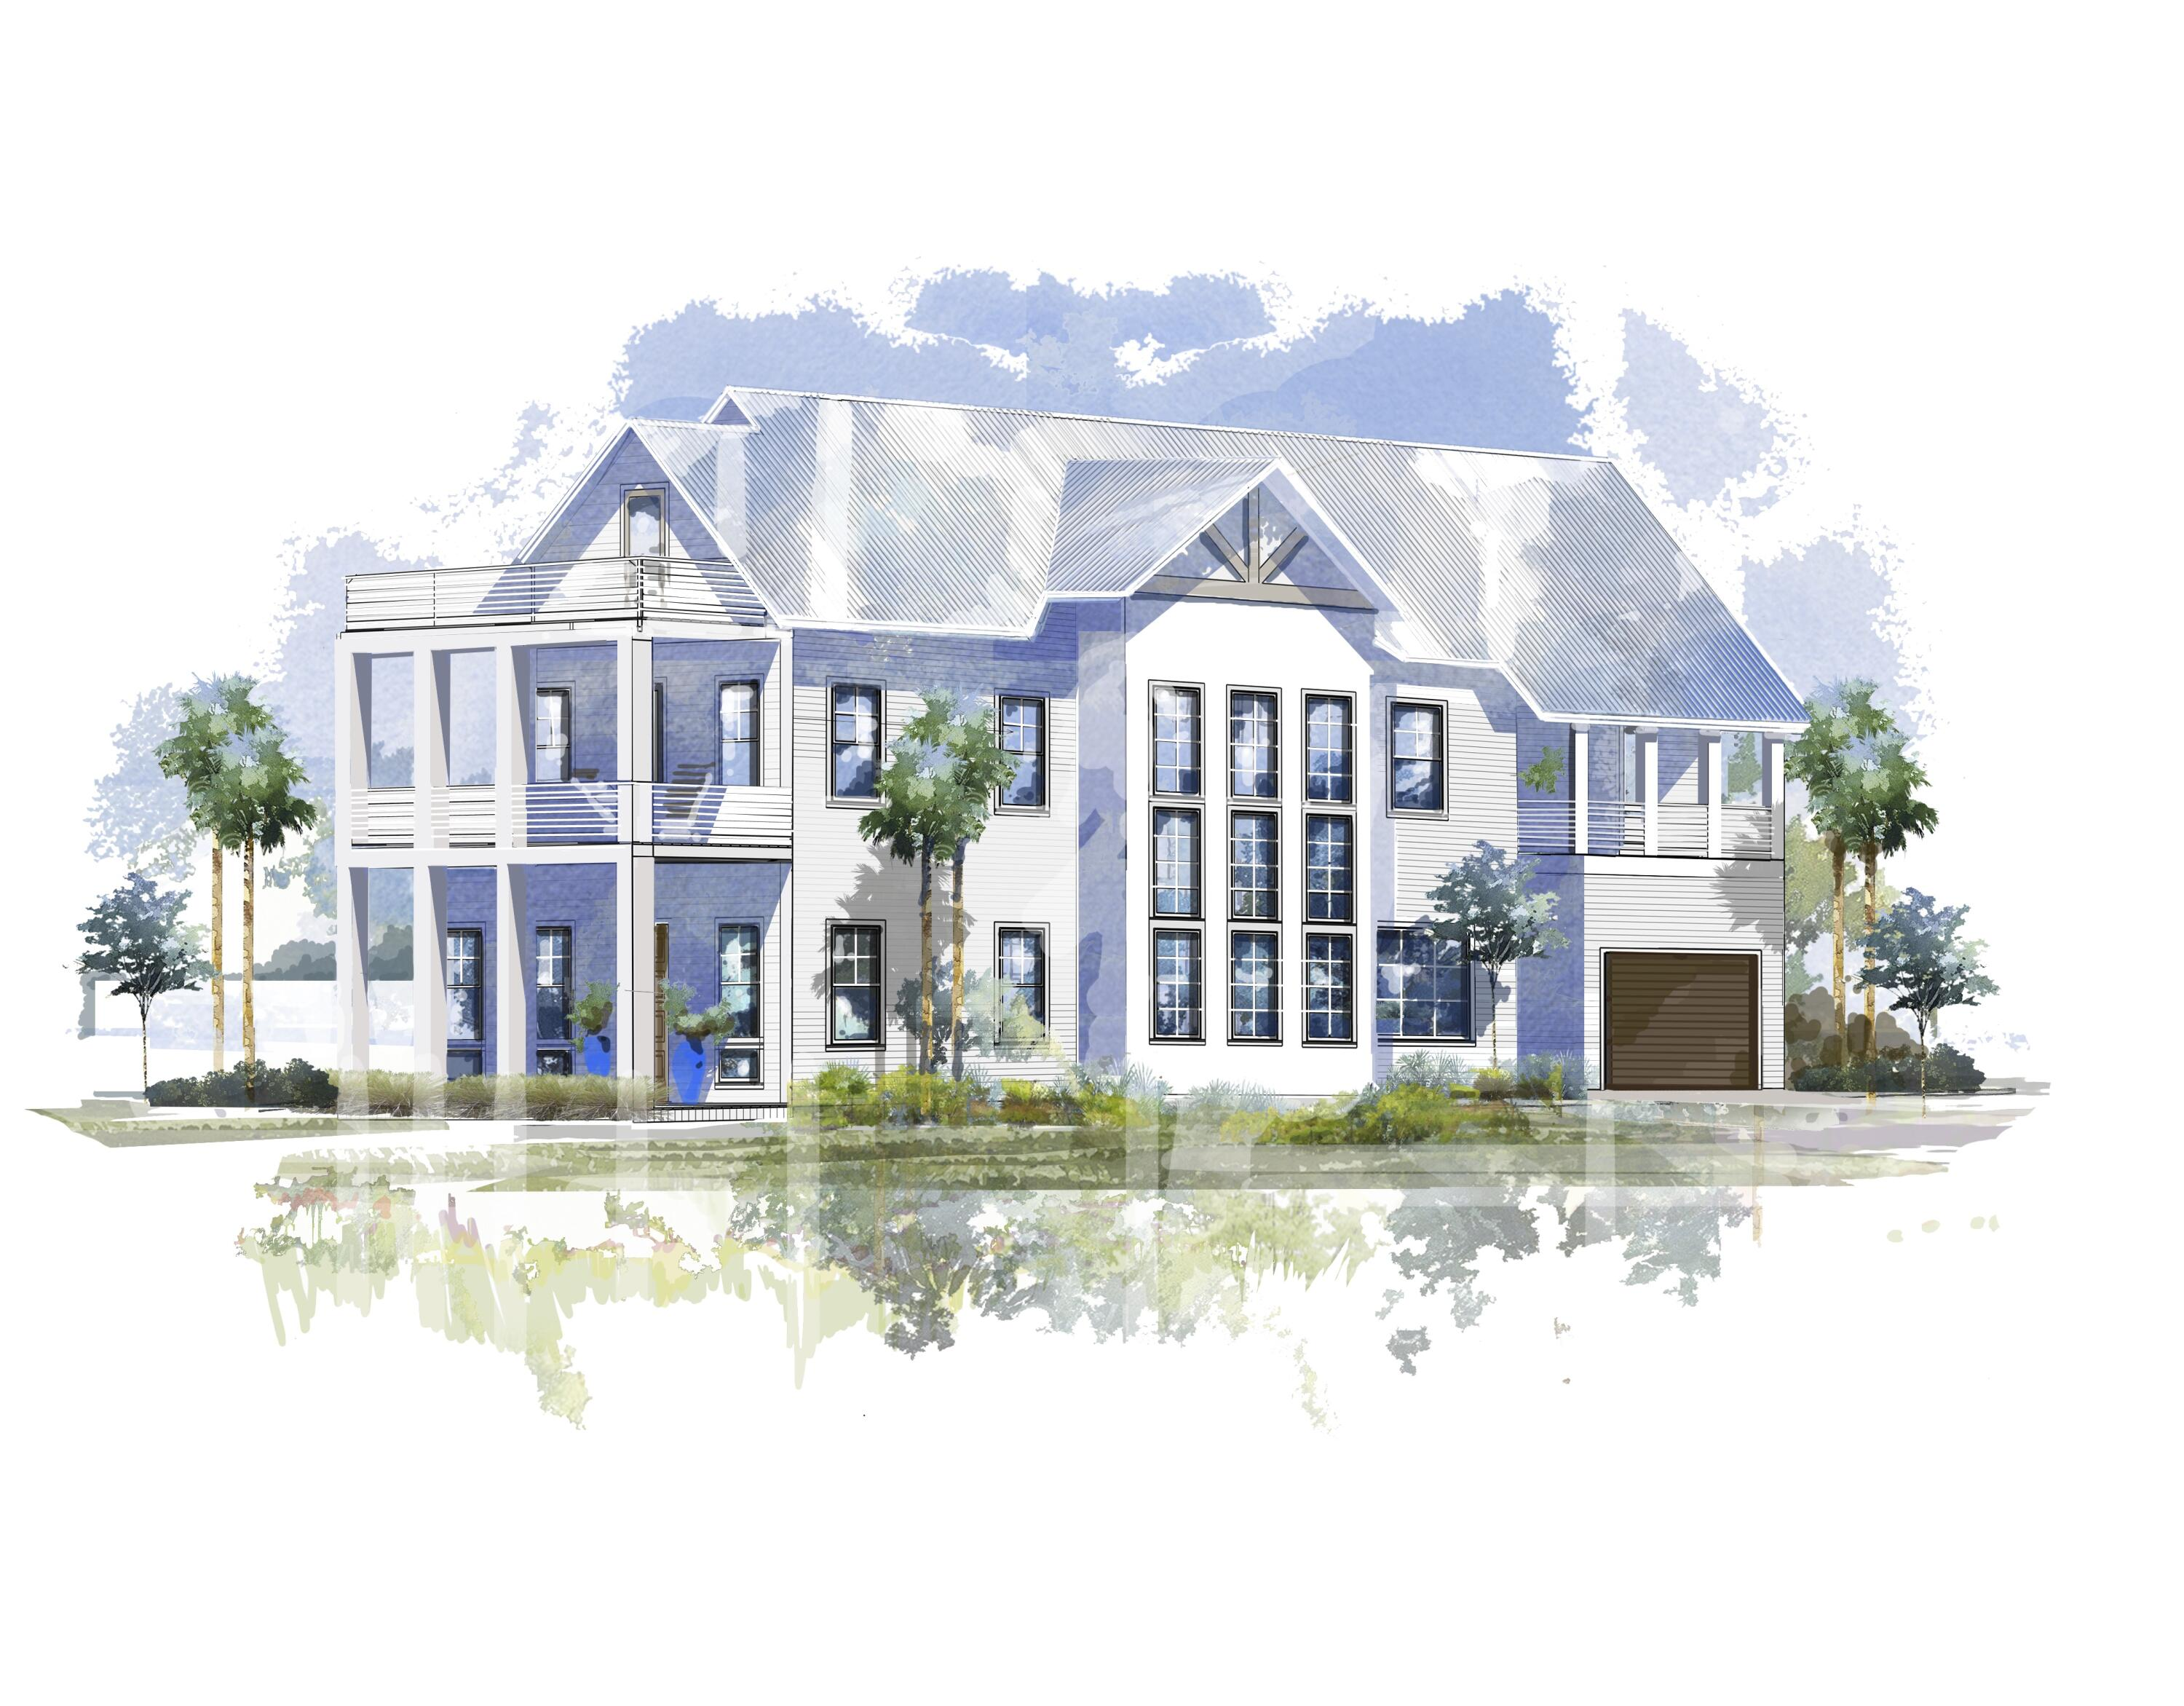 One block West of the E. Lake beach access, this home embodies the charm of old Florida complimented by state-of-the-art amenities. Views of the Gulf are captured from all porches. Multiple living areas, bonus room, private pool and large outdoor entertaining area provide every amenity to make this your primary residence or luxury vacation paradise. 7 BR / 5.5 BA, 1.5 car garage, ample additional parking, open concept chef's kitchen, and private pool with outdoor kitchen and entertainment area.Expansive living area for the adults and second game/living room for the kids. Second story master, bunk room and guest suites.  Sweeping views of the Gulf from multiple porches! Don't miss the secret room!